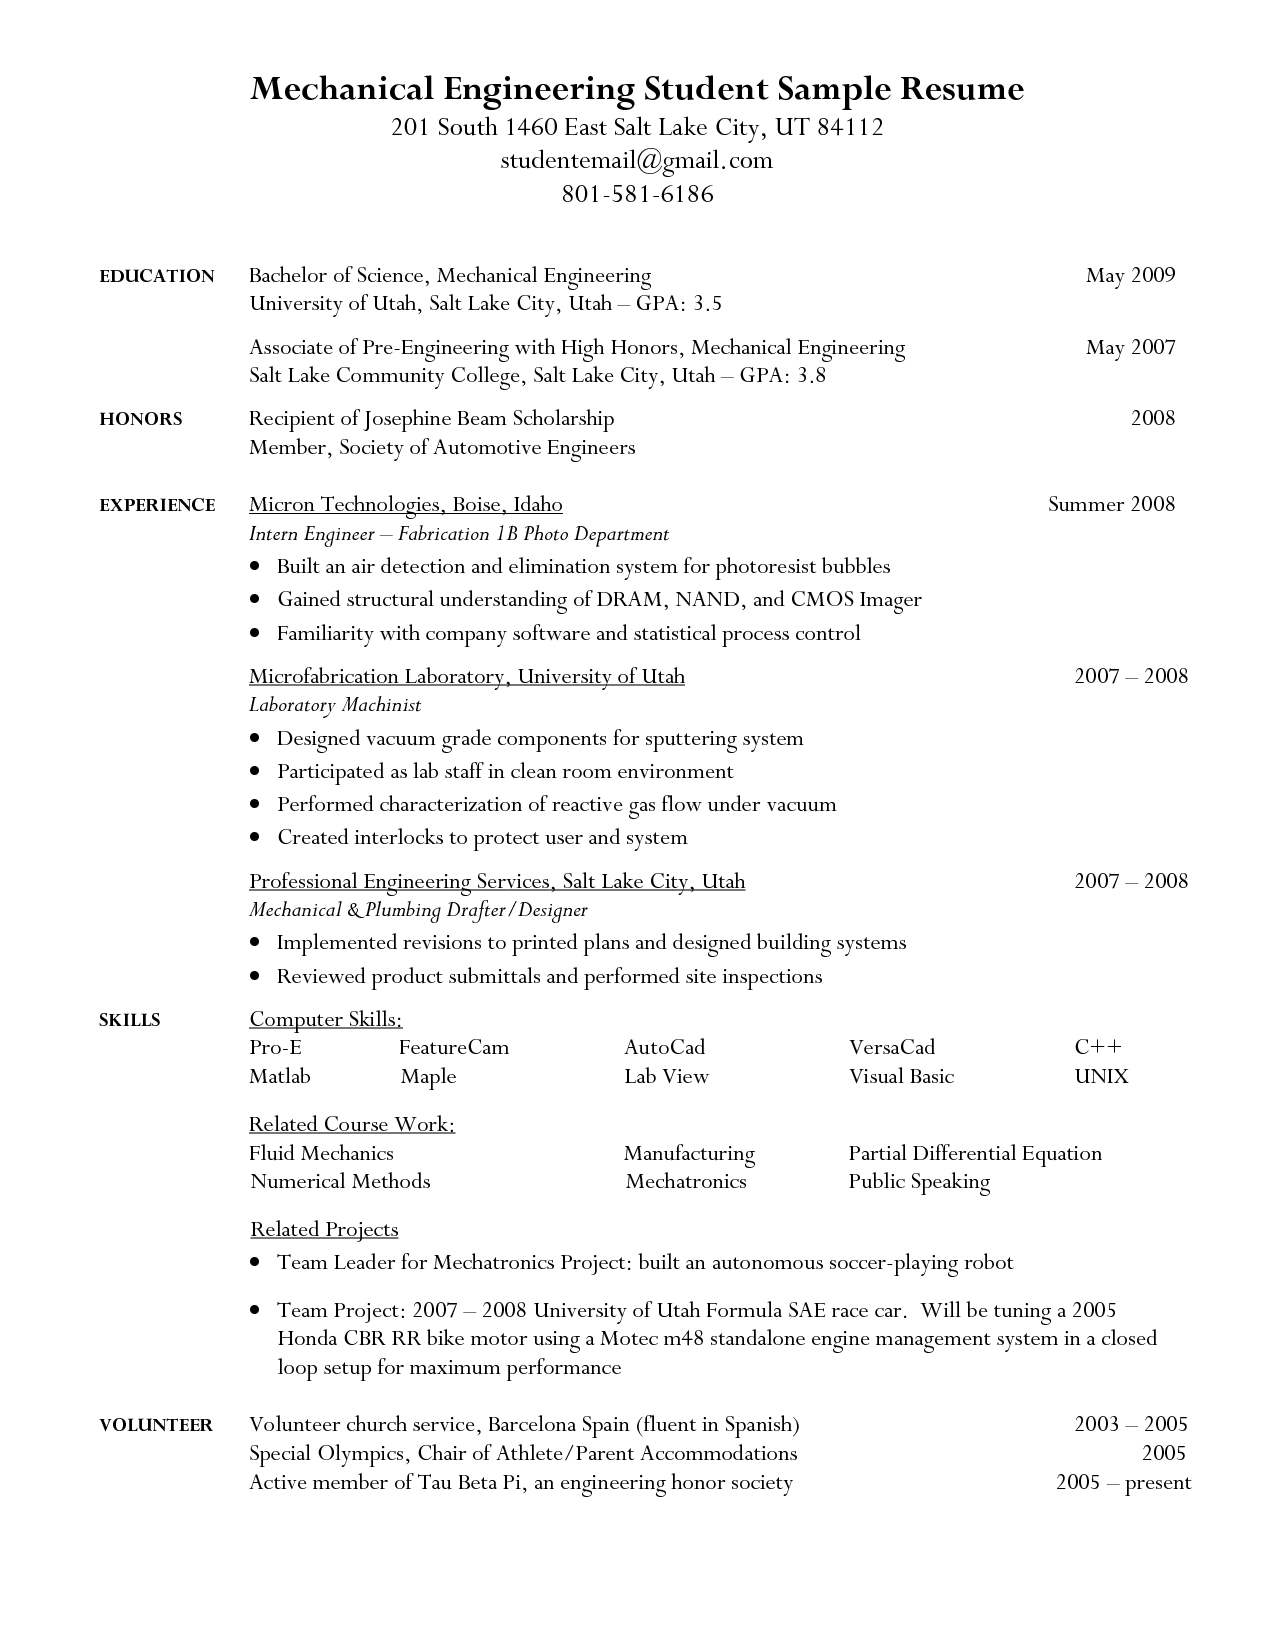 mechanical engineering resume template engineering student resume search resumes 23599 | 82eb8e2ed0603bbefca42f753d0ea932